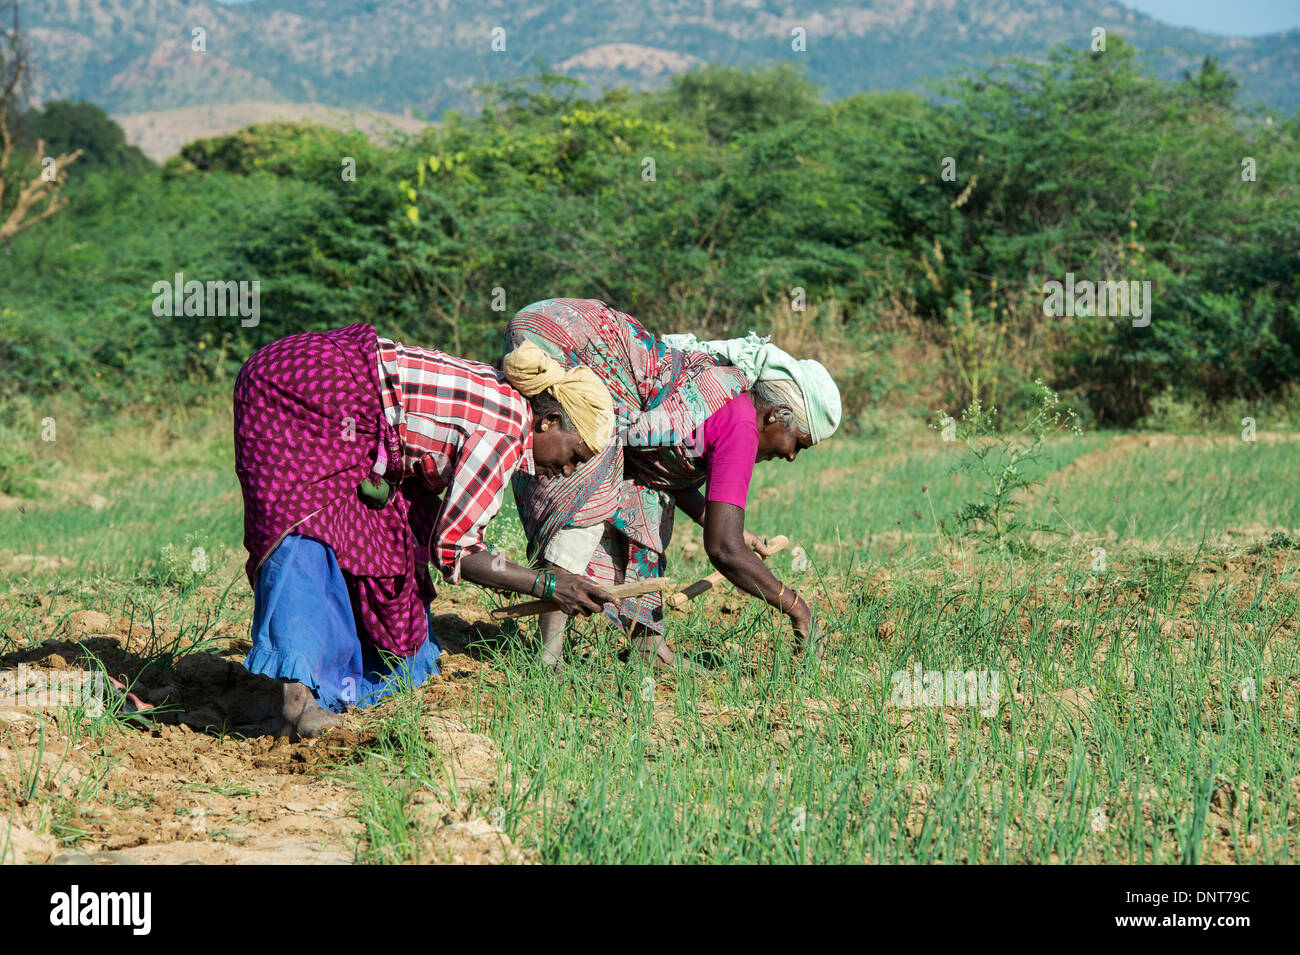 Elderly Indian women tilling the hard soil with hand tools in a field of cultivated onions. Andhra Pradesh, India - Stock Image